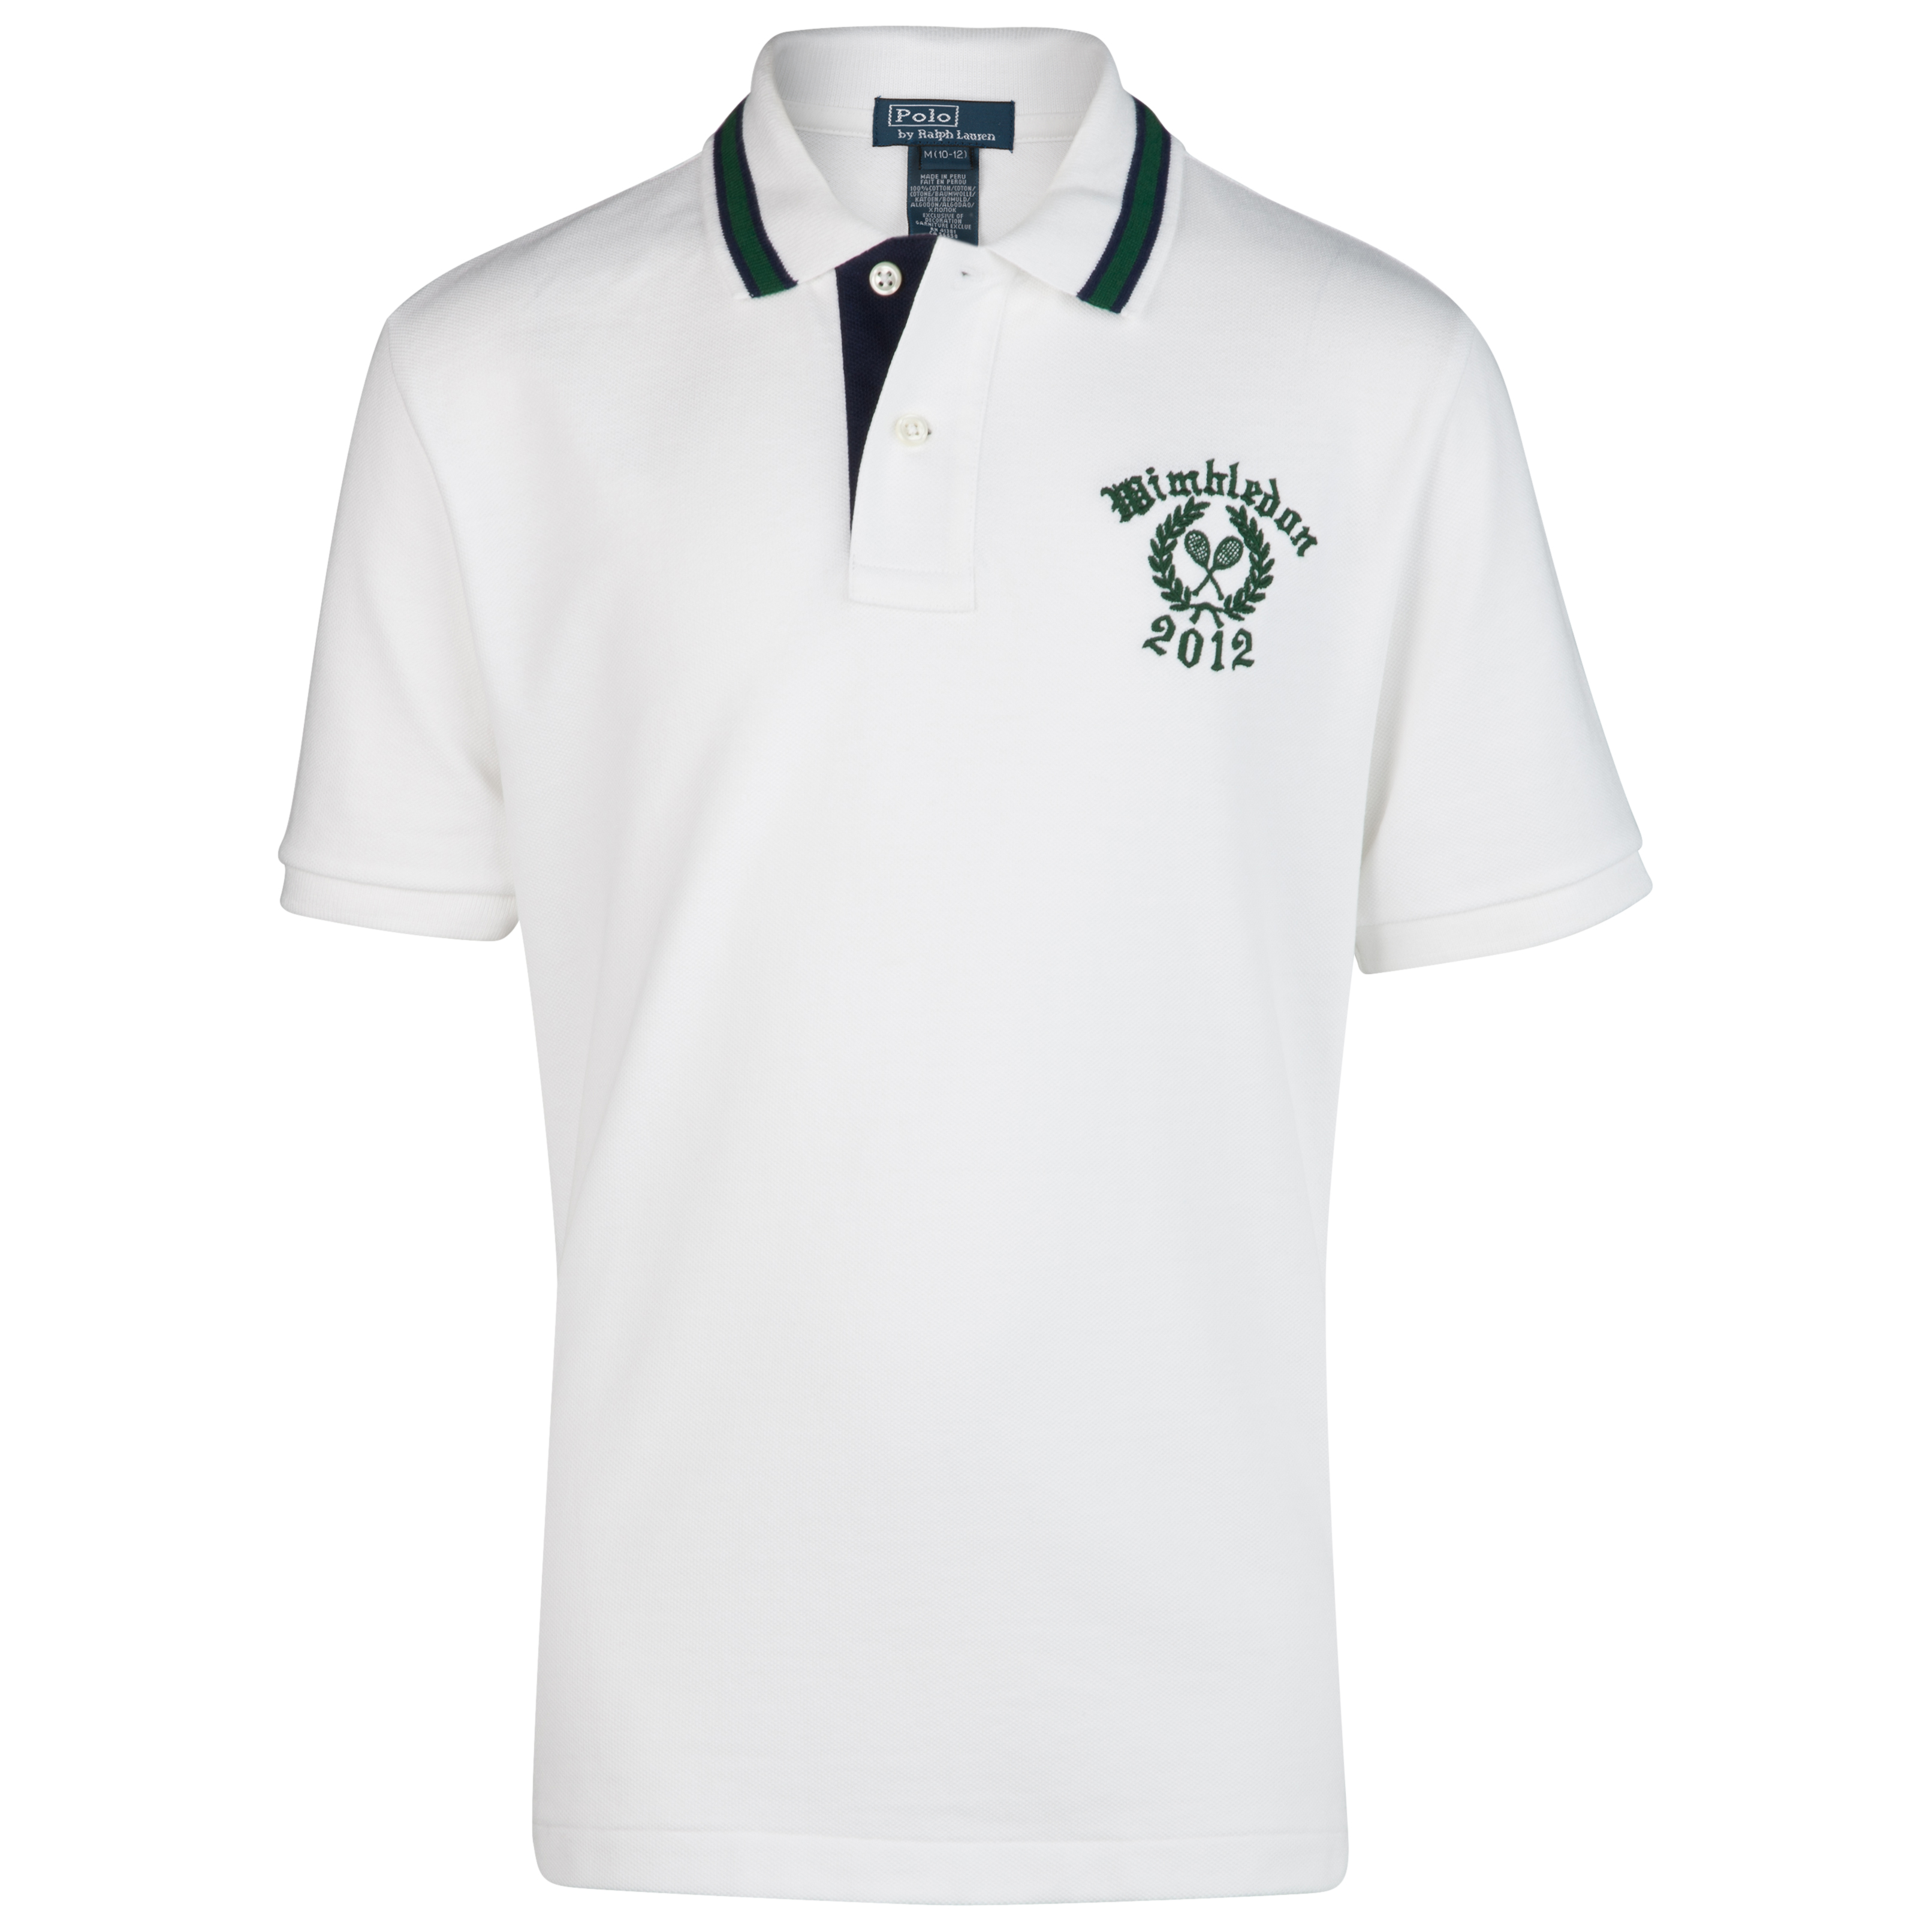 Polo Ralph Lauren Wimbledon Big PP Mesh Polo - Classic Oxford White - Infant Boys